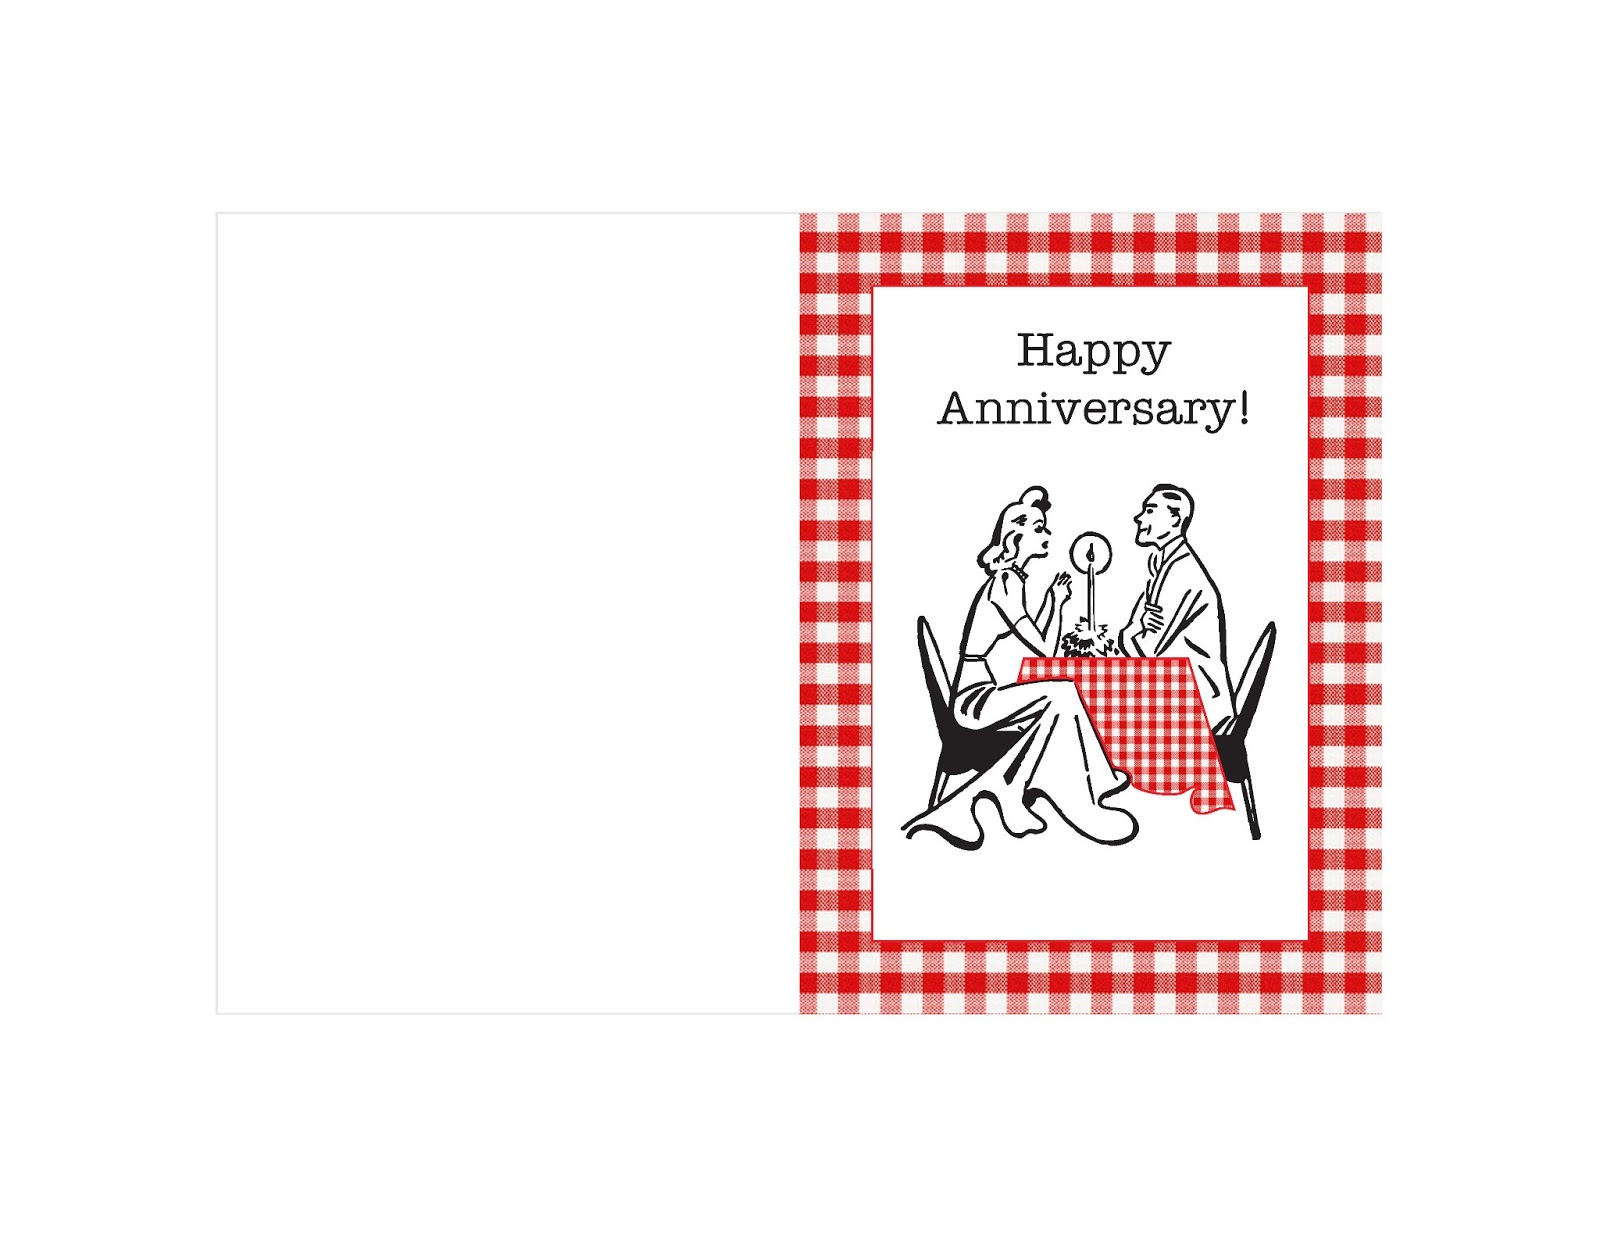 30 Free Printable Anniversary Cards | Kittybabylove - Free Printable 50Th Anniversary Cards